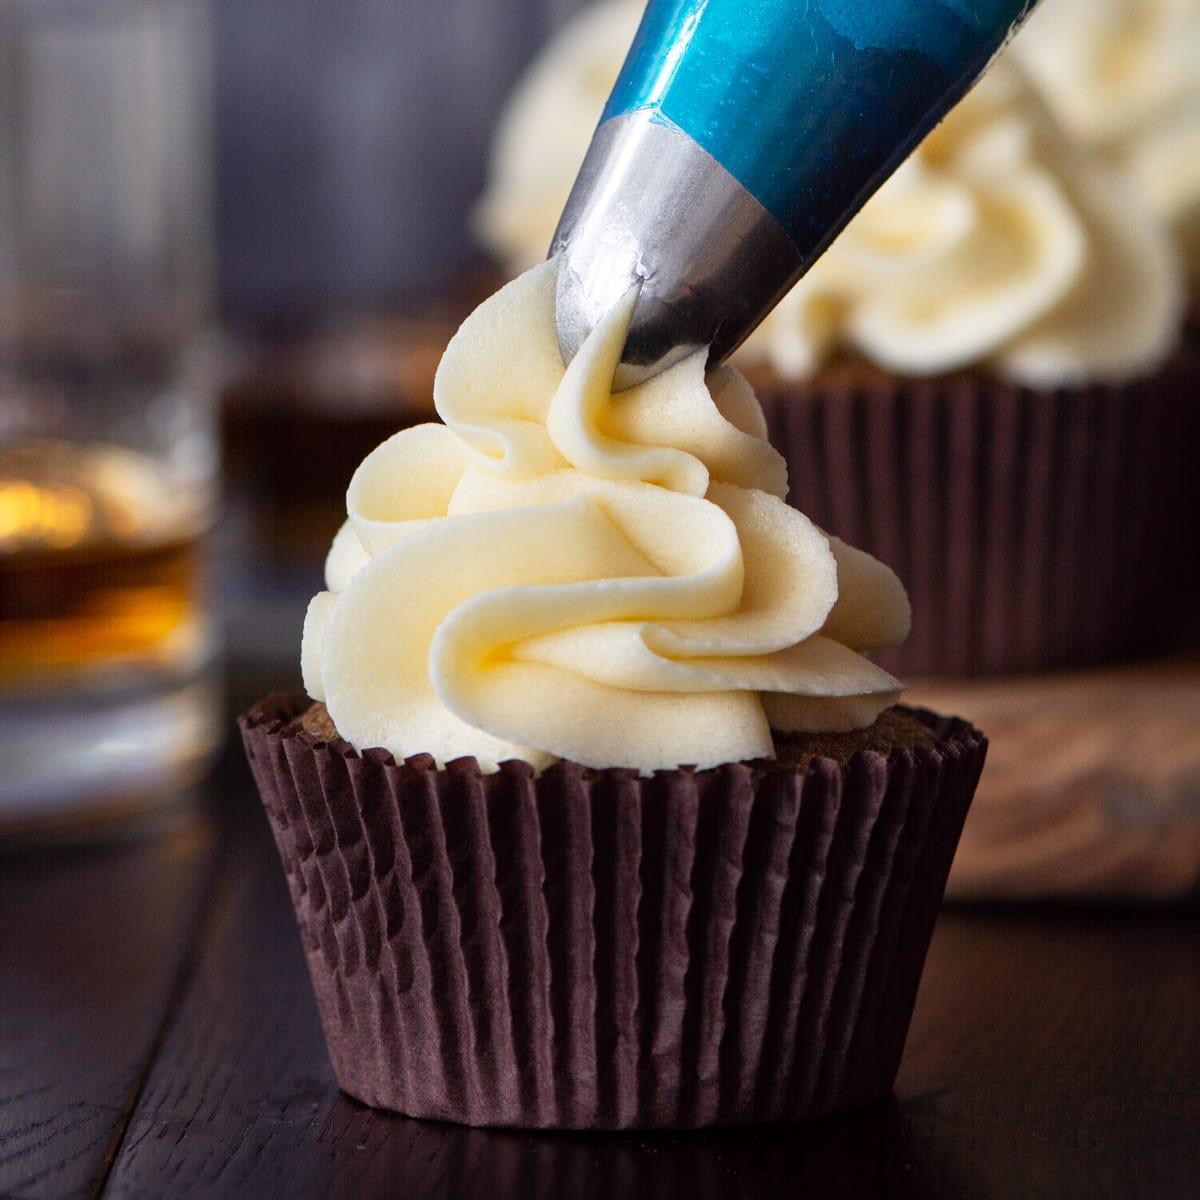 Whiskey buttercream being piped onto a coffee cupcake.